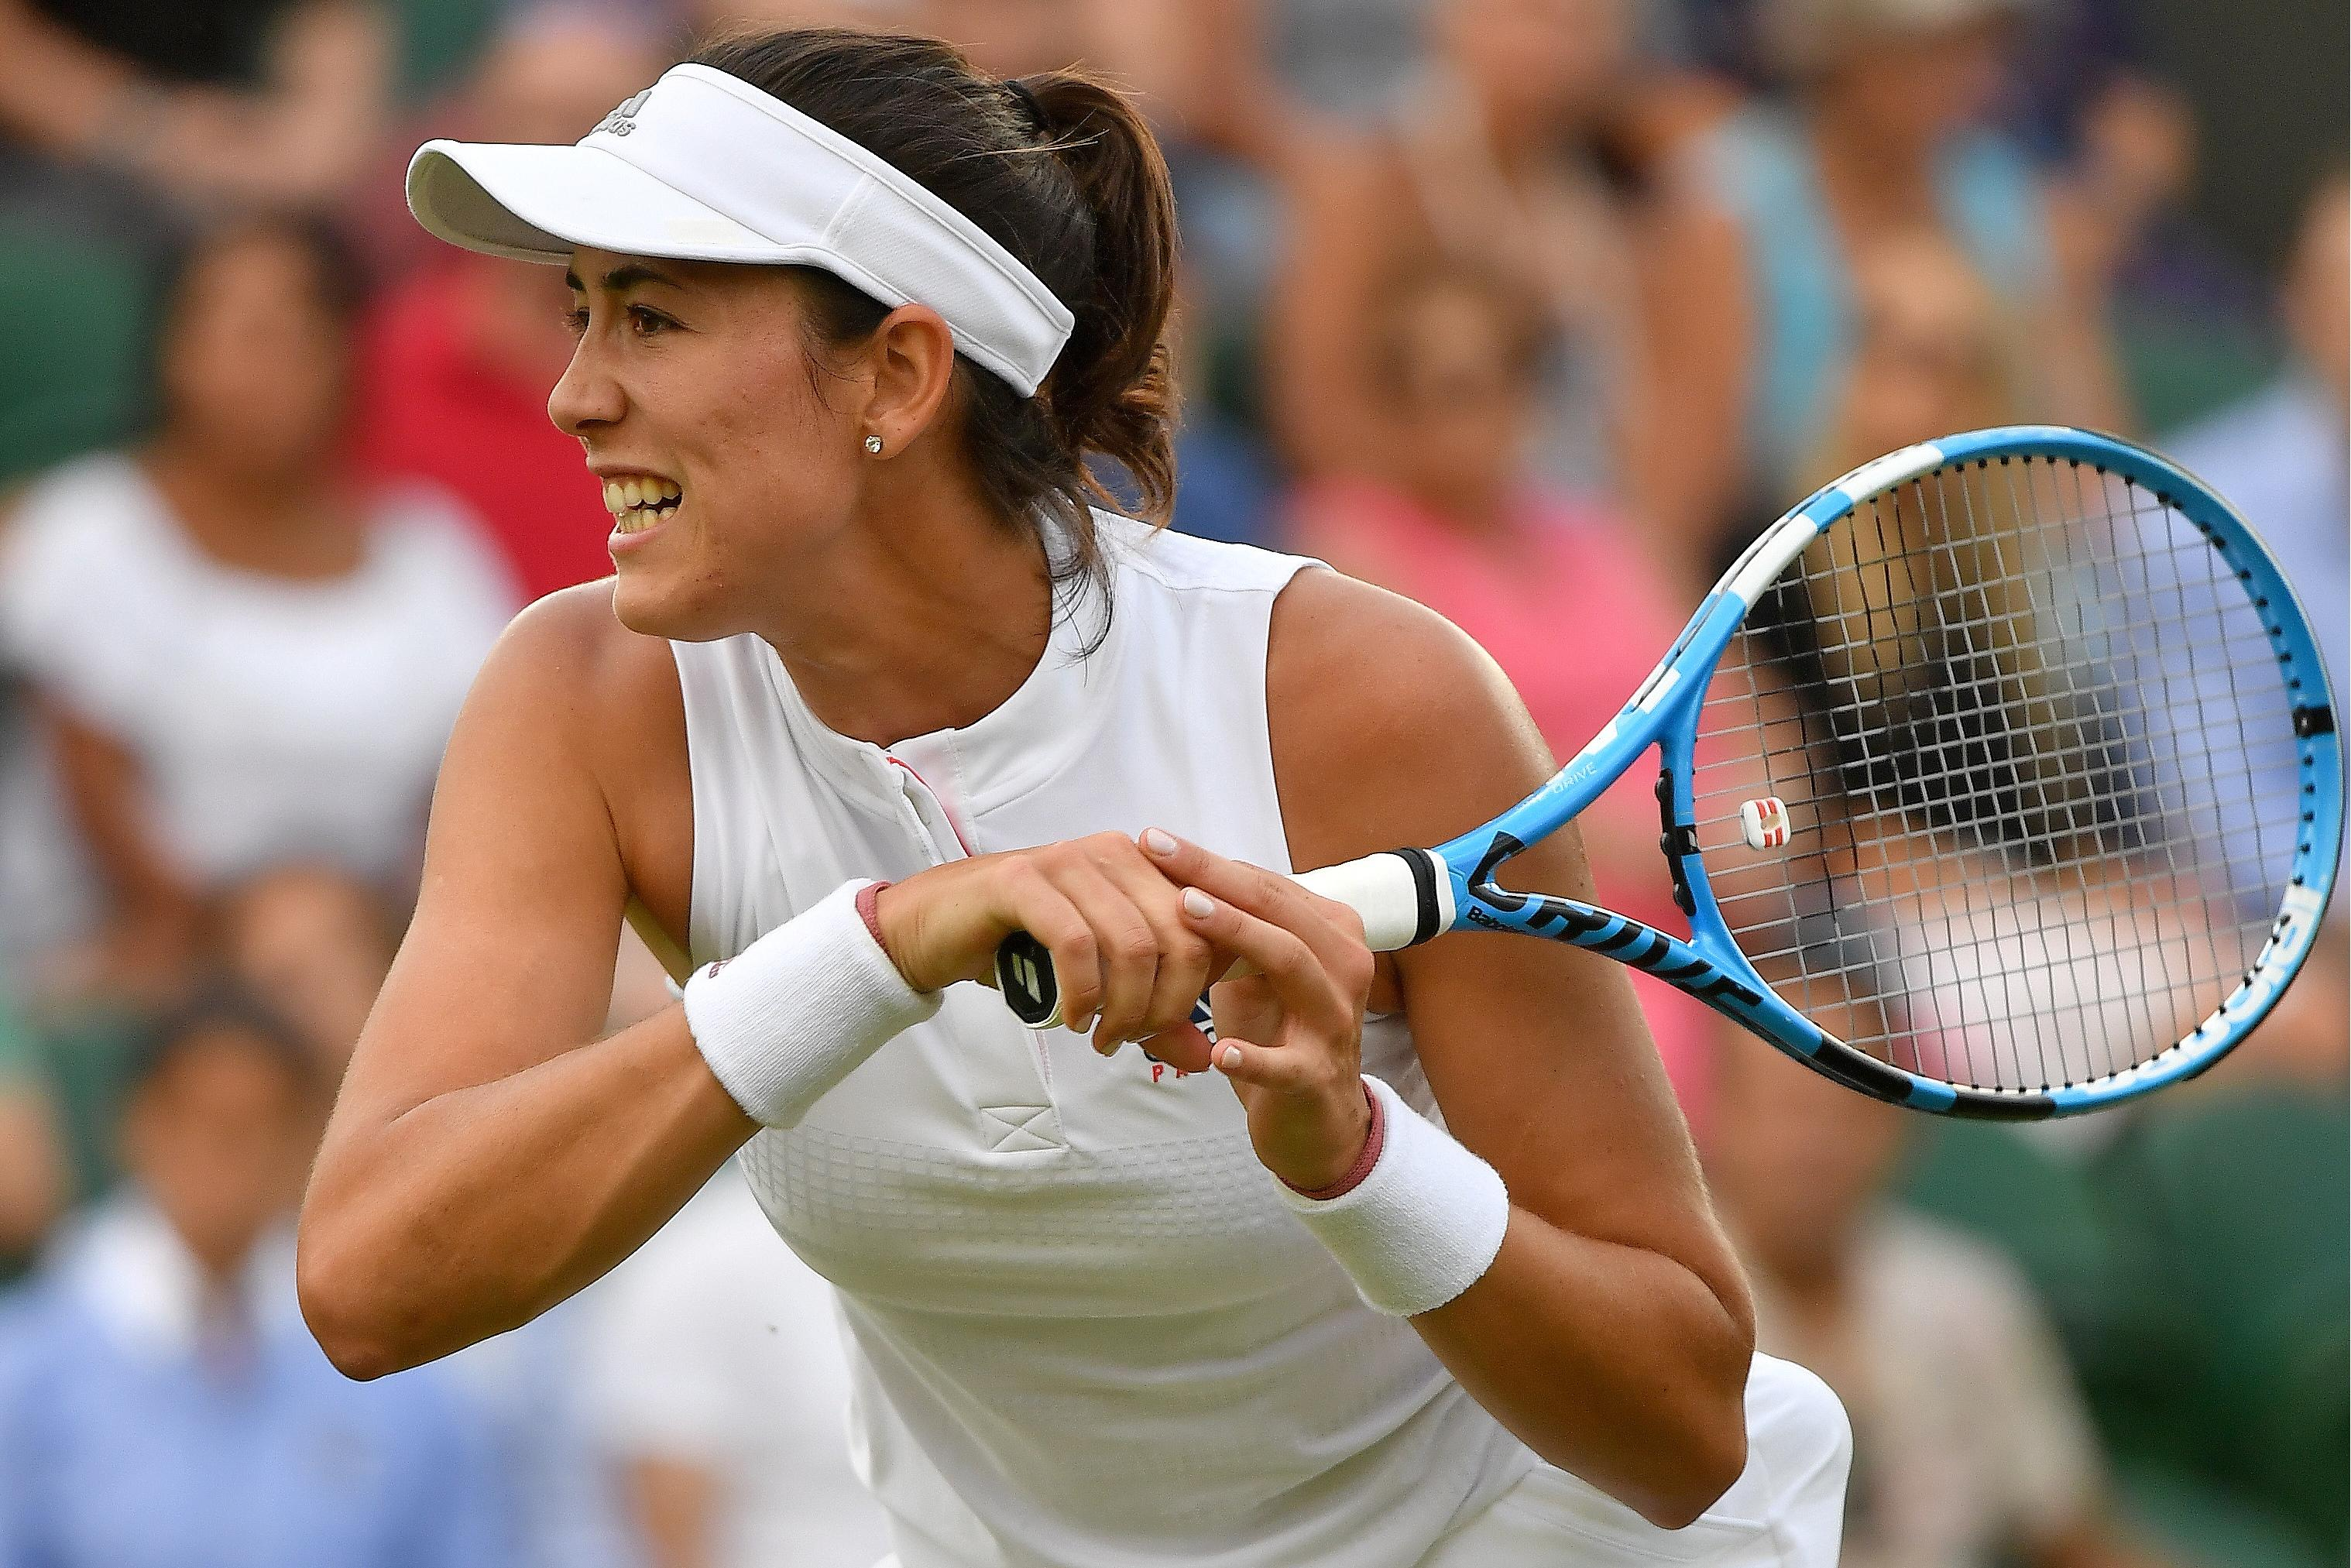 Garbine Muguruza crashed out in what is the biggest shock of this year's tournament